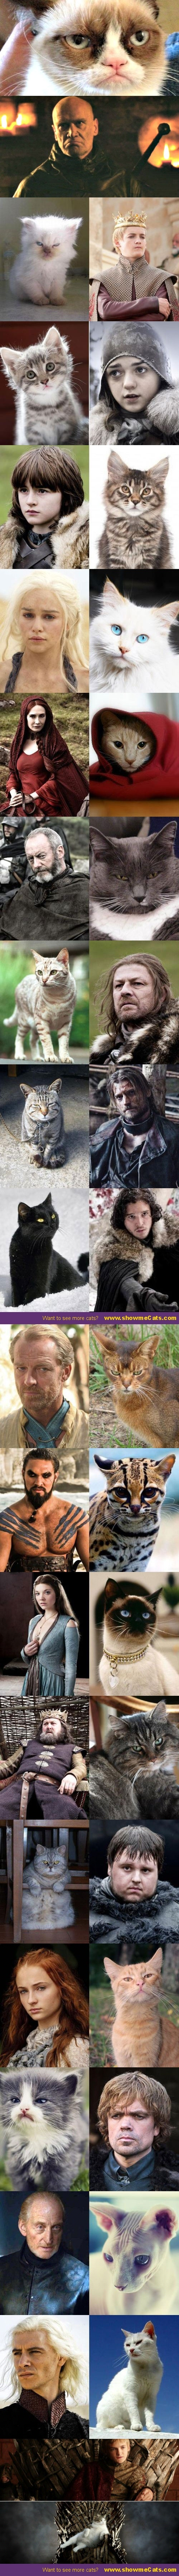 The ultimate Game of Thrones Cats Doppelganger - this is pretty funny! This must have taken a LONG time to compile!